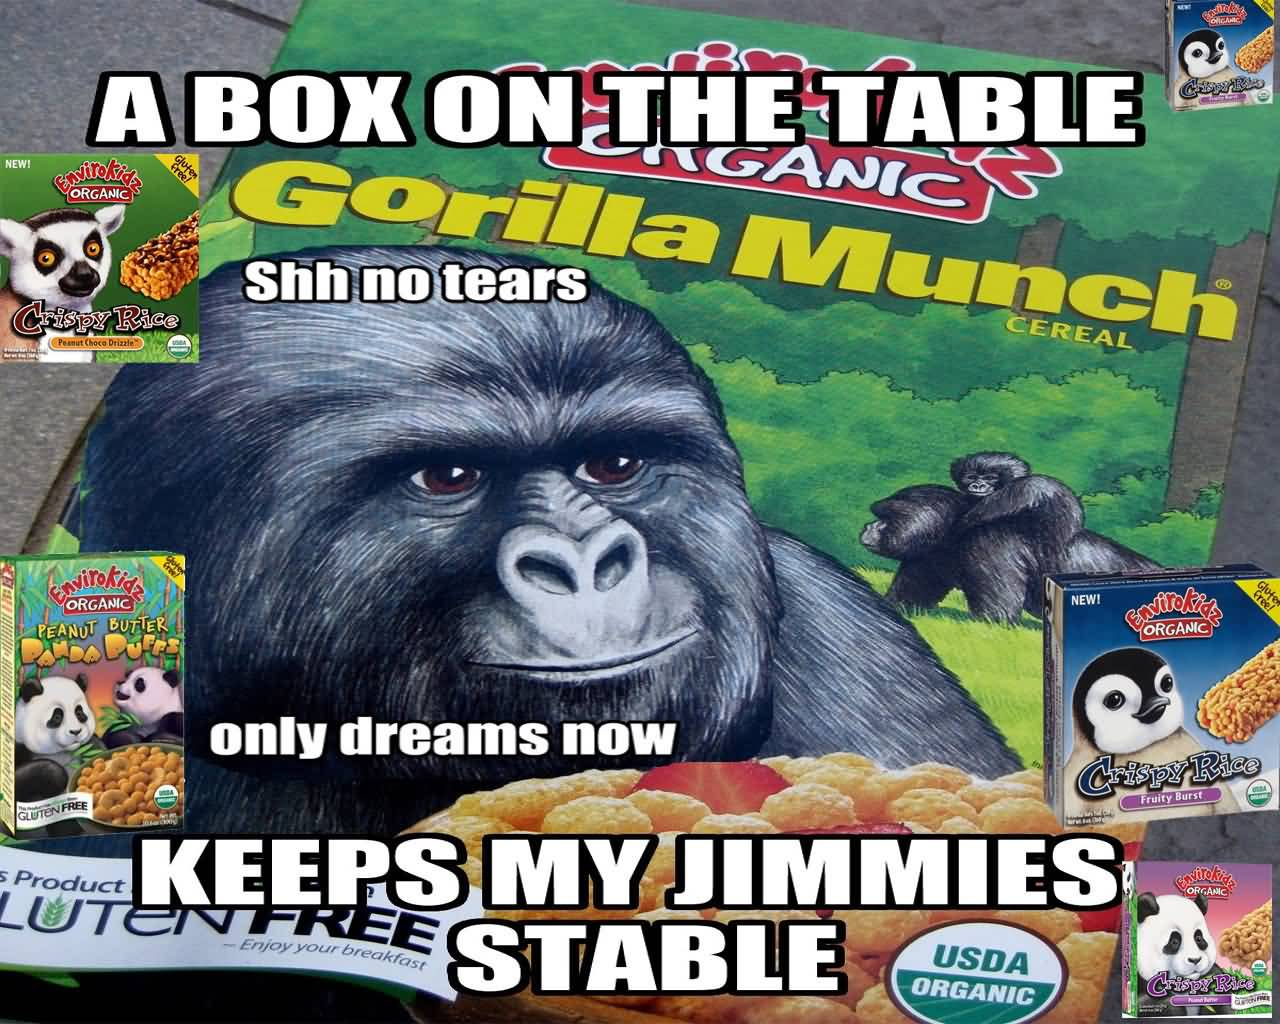 Gorilla Munch Meme Funny Image Photo Joke 12